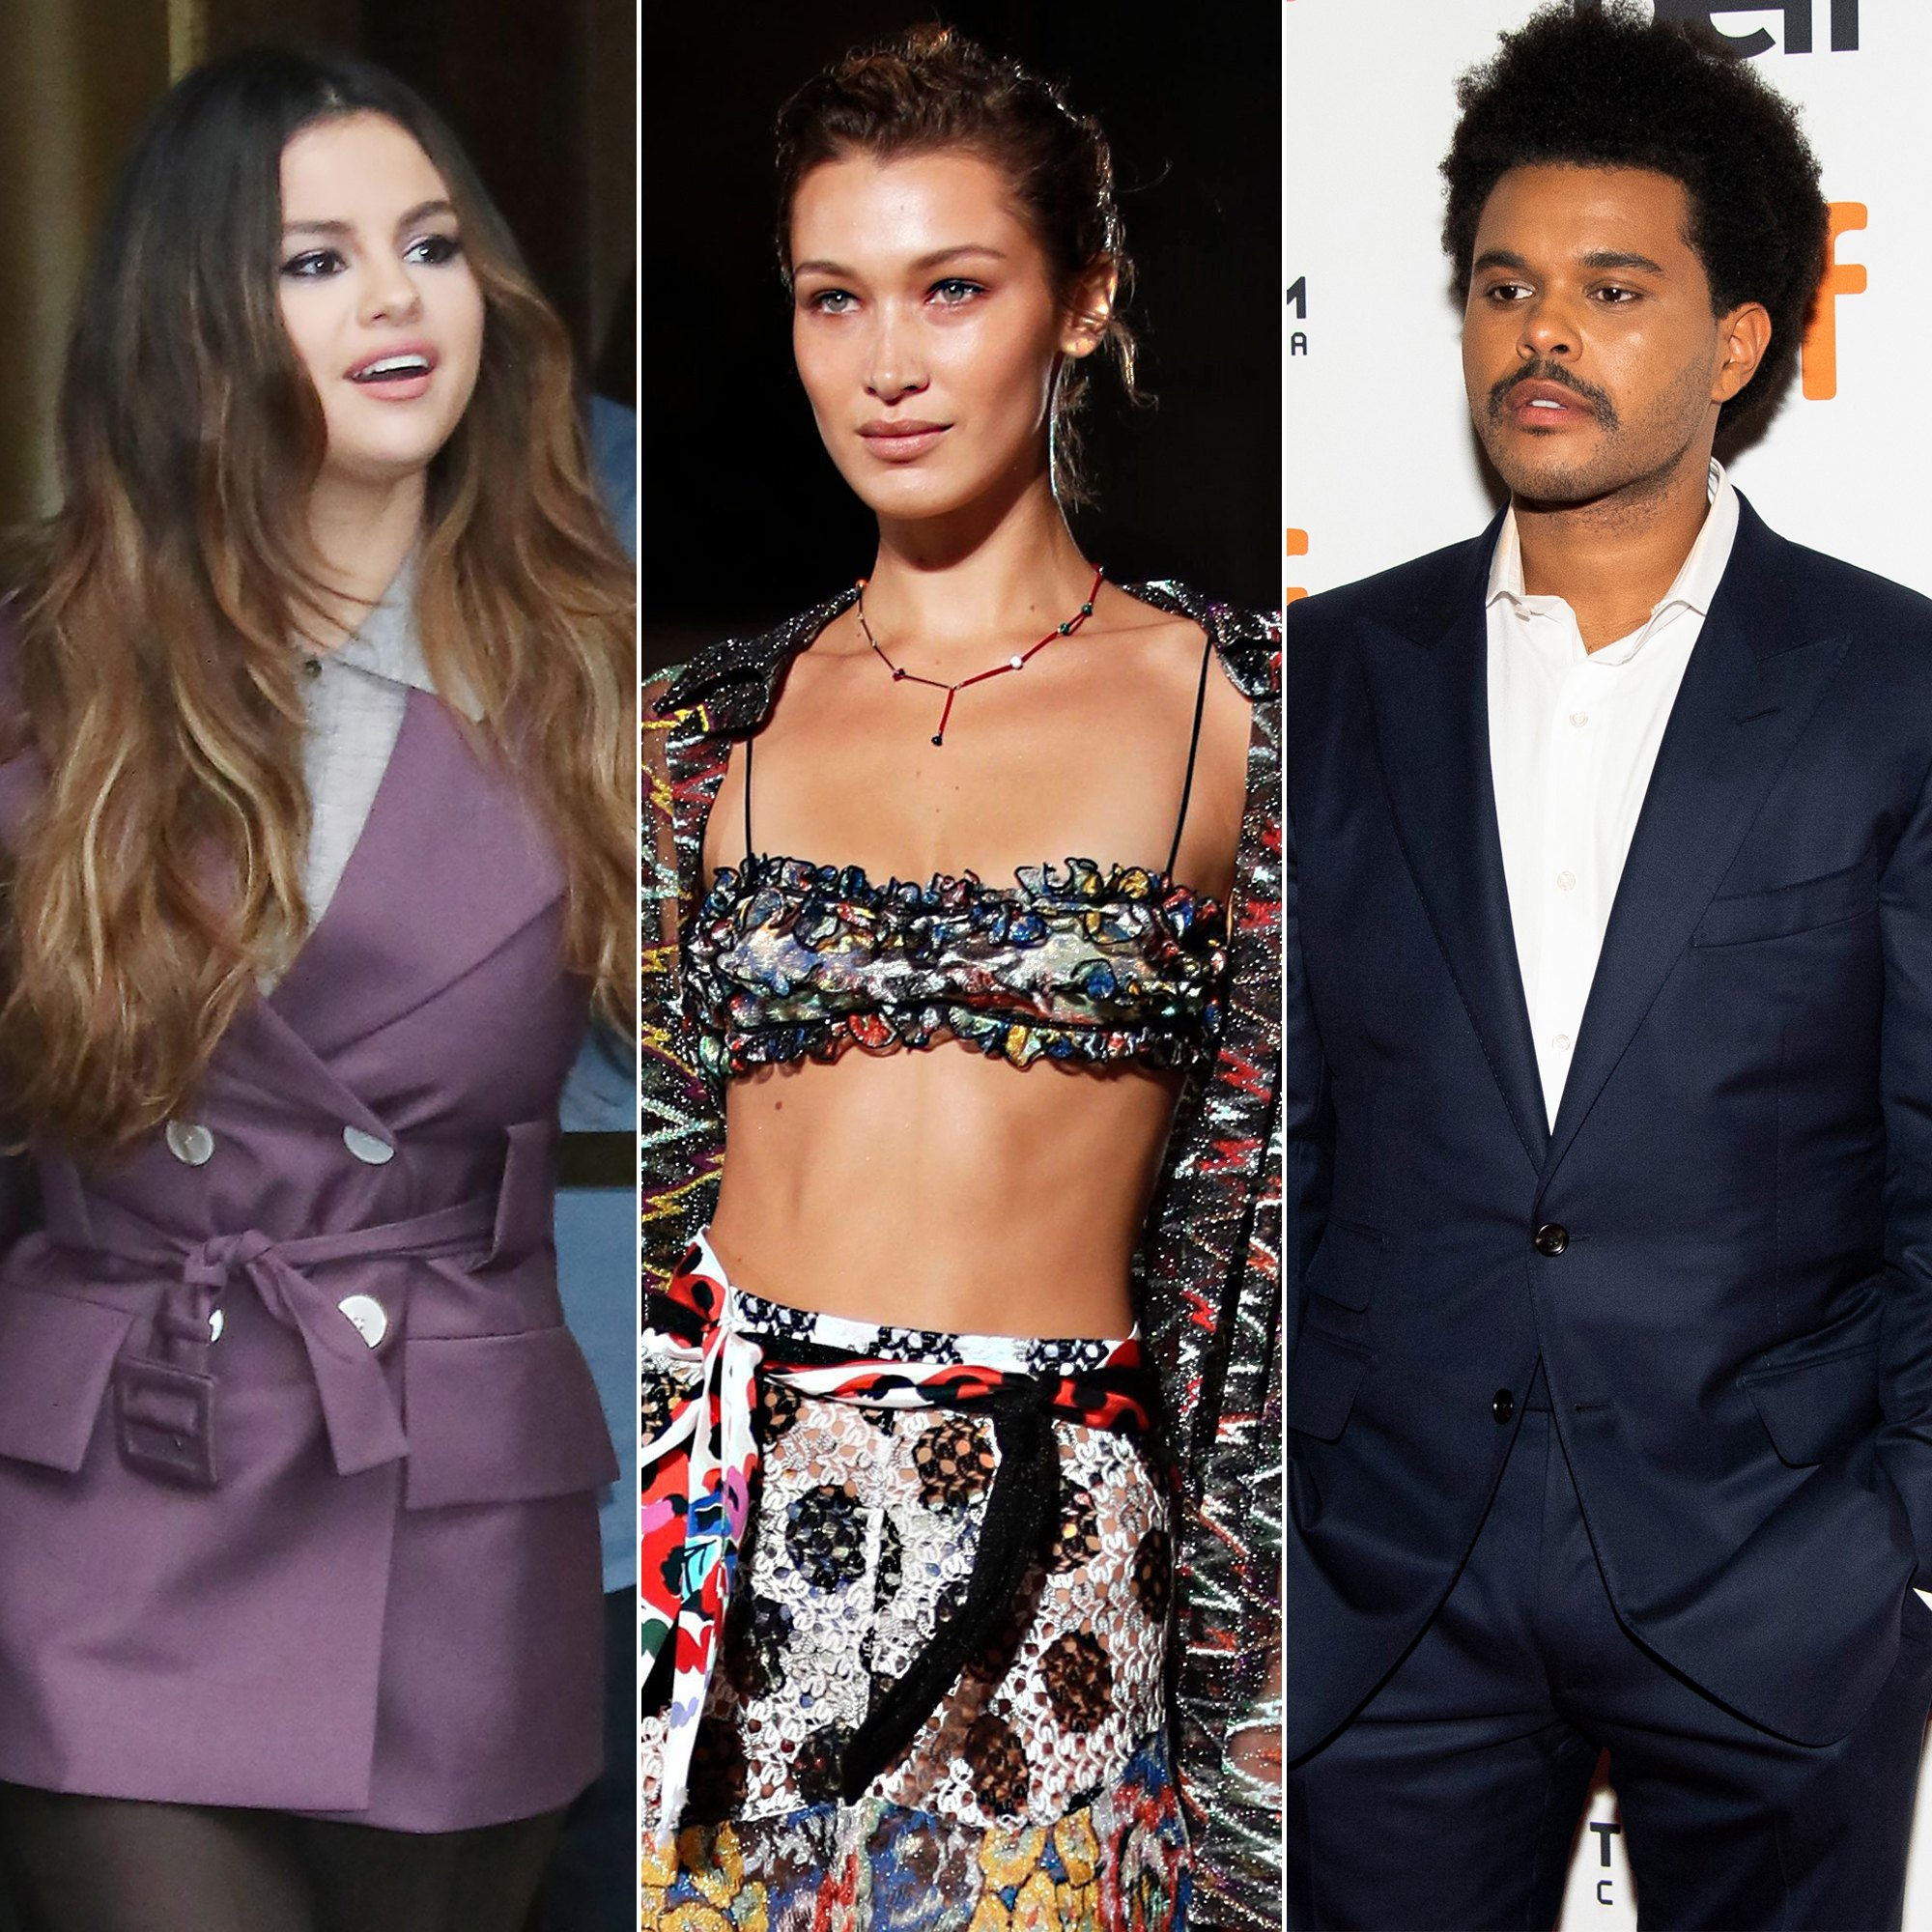 the-weeknds-exes-bella-hadid-and-selena-gomez-reportedly-watched-his-super-bowl-show-and-are-really-proud-heres-why